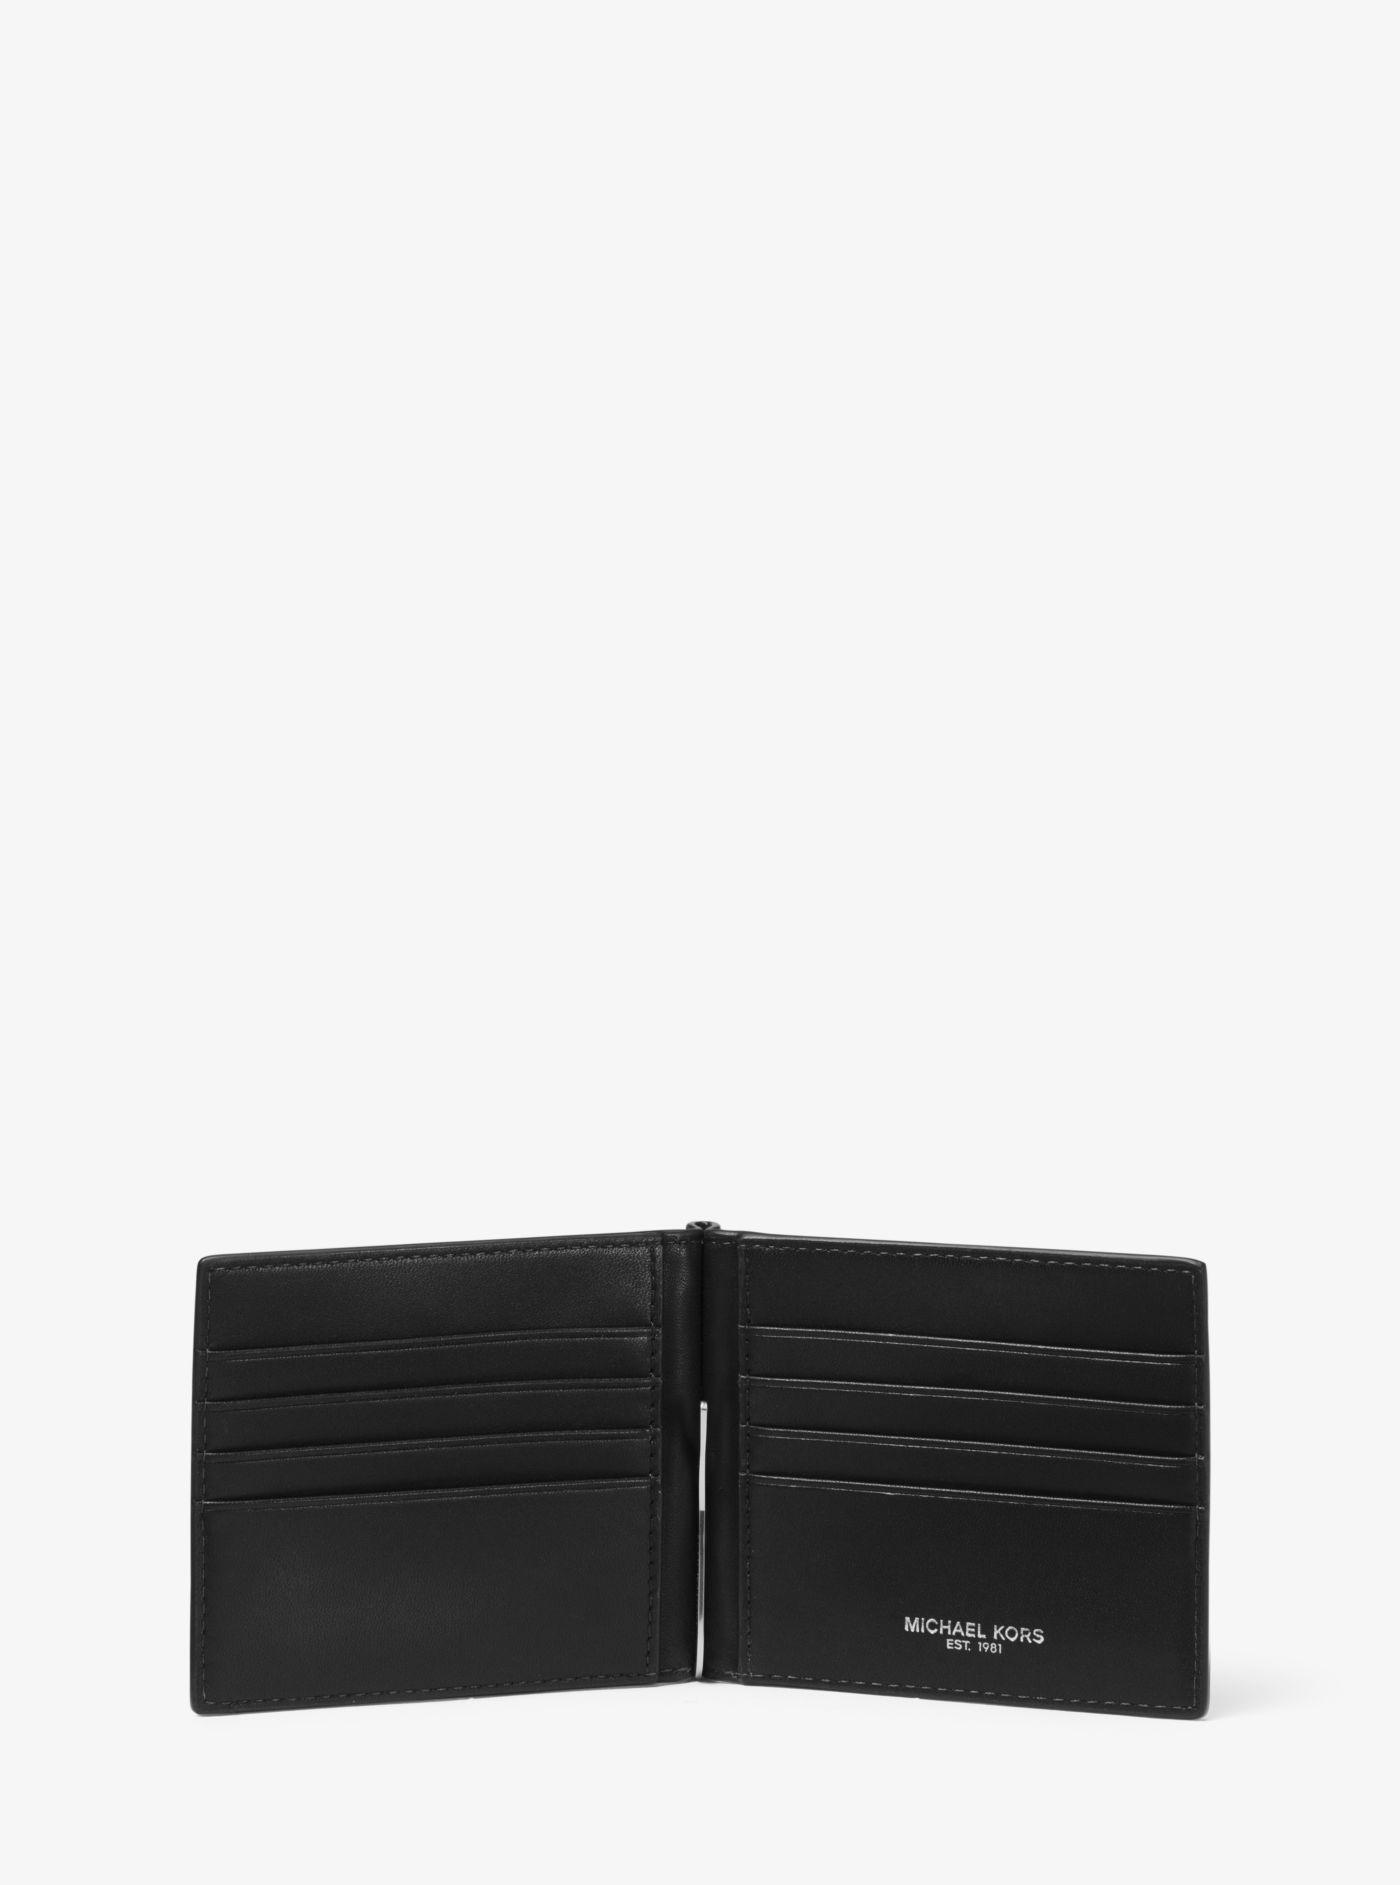 7496f3828a5c Lyst - Michael Kors Odin Leather Money Clip Wallet in Black for Men